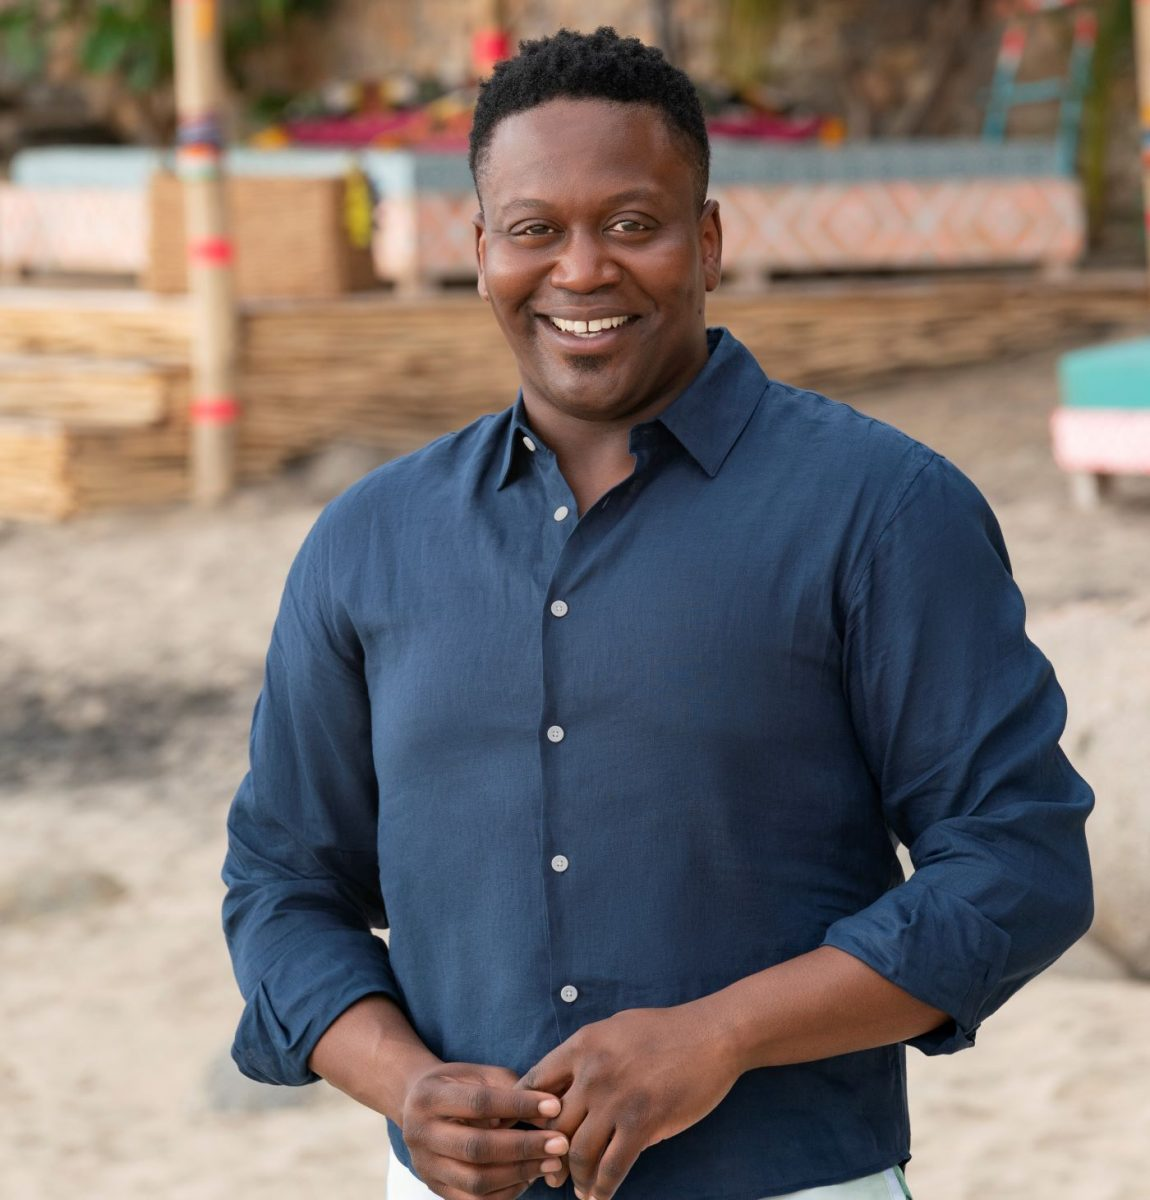 Tituss Burgess hosting 'Bachelor in Paradise' in a blue button up shirt